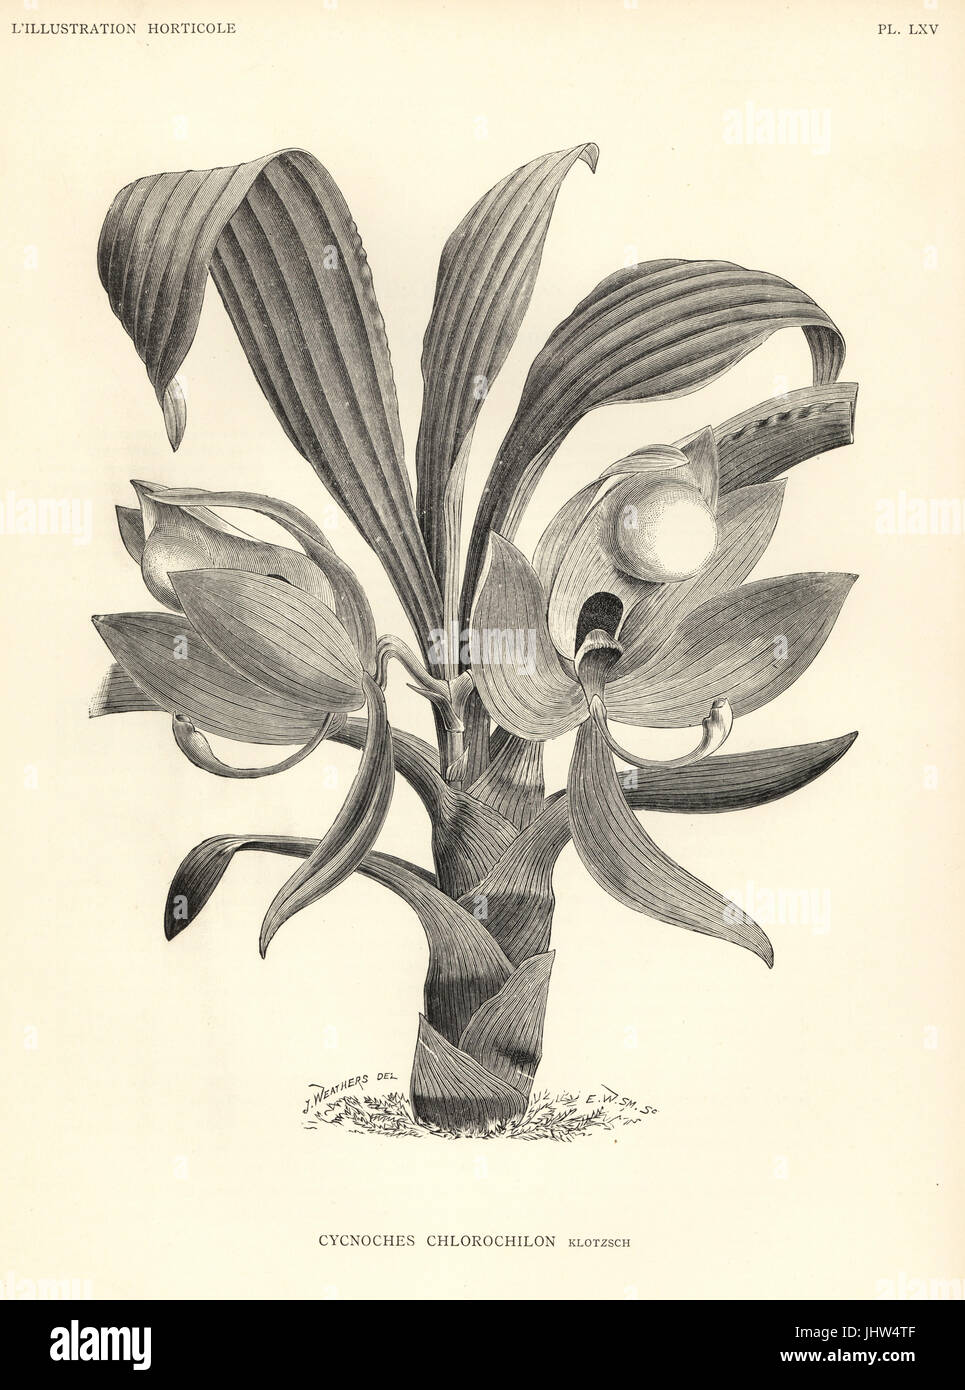 Cycnoches chlorochilon orchid. Woodcut by E.W. Smith after an illustration by J. Weathers from Jean Linden's - Stock Image